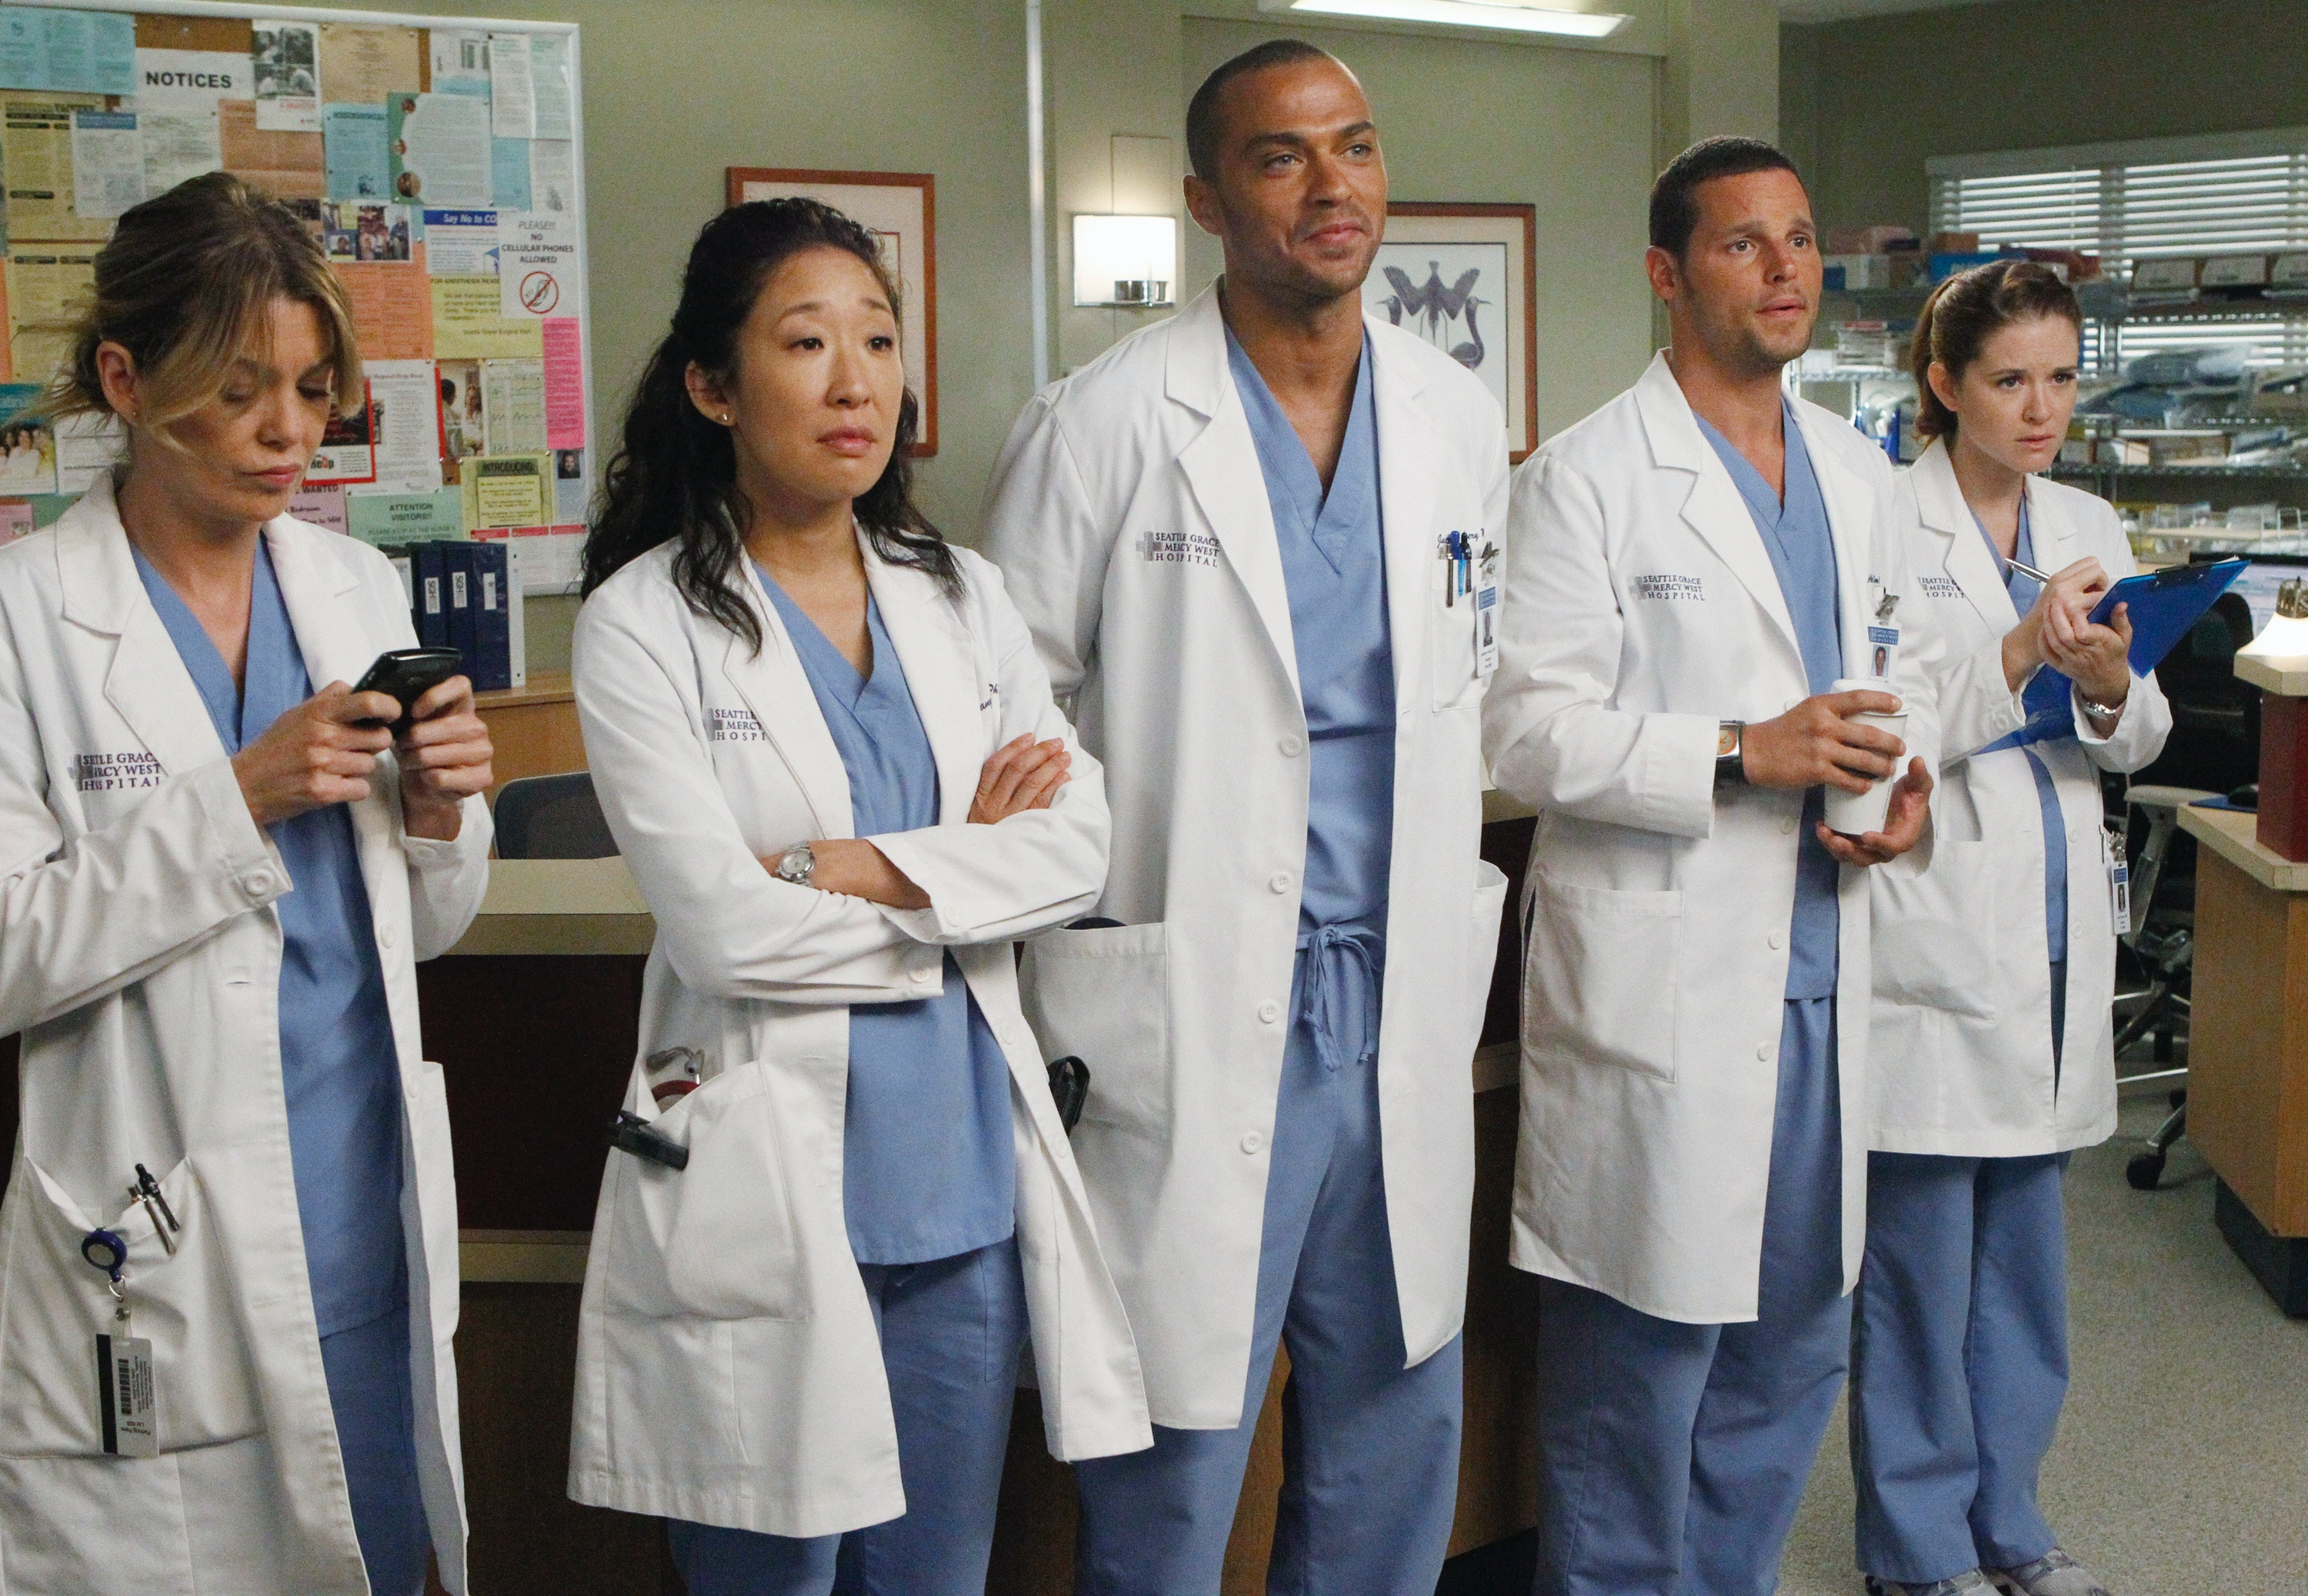 Greys Anatomy Season Finale Is On May 15th But Who Will Be On The